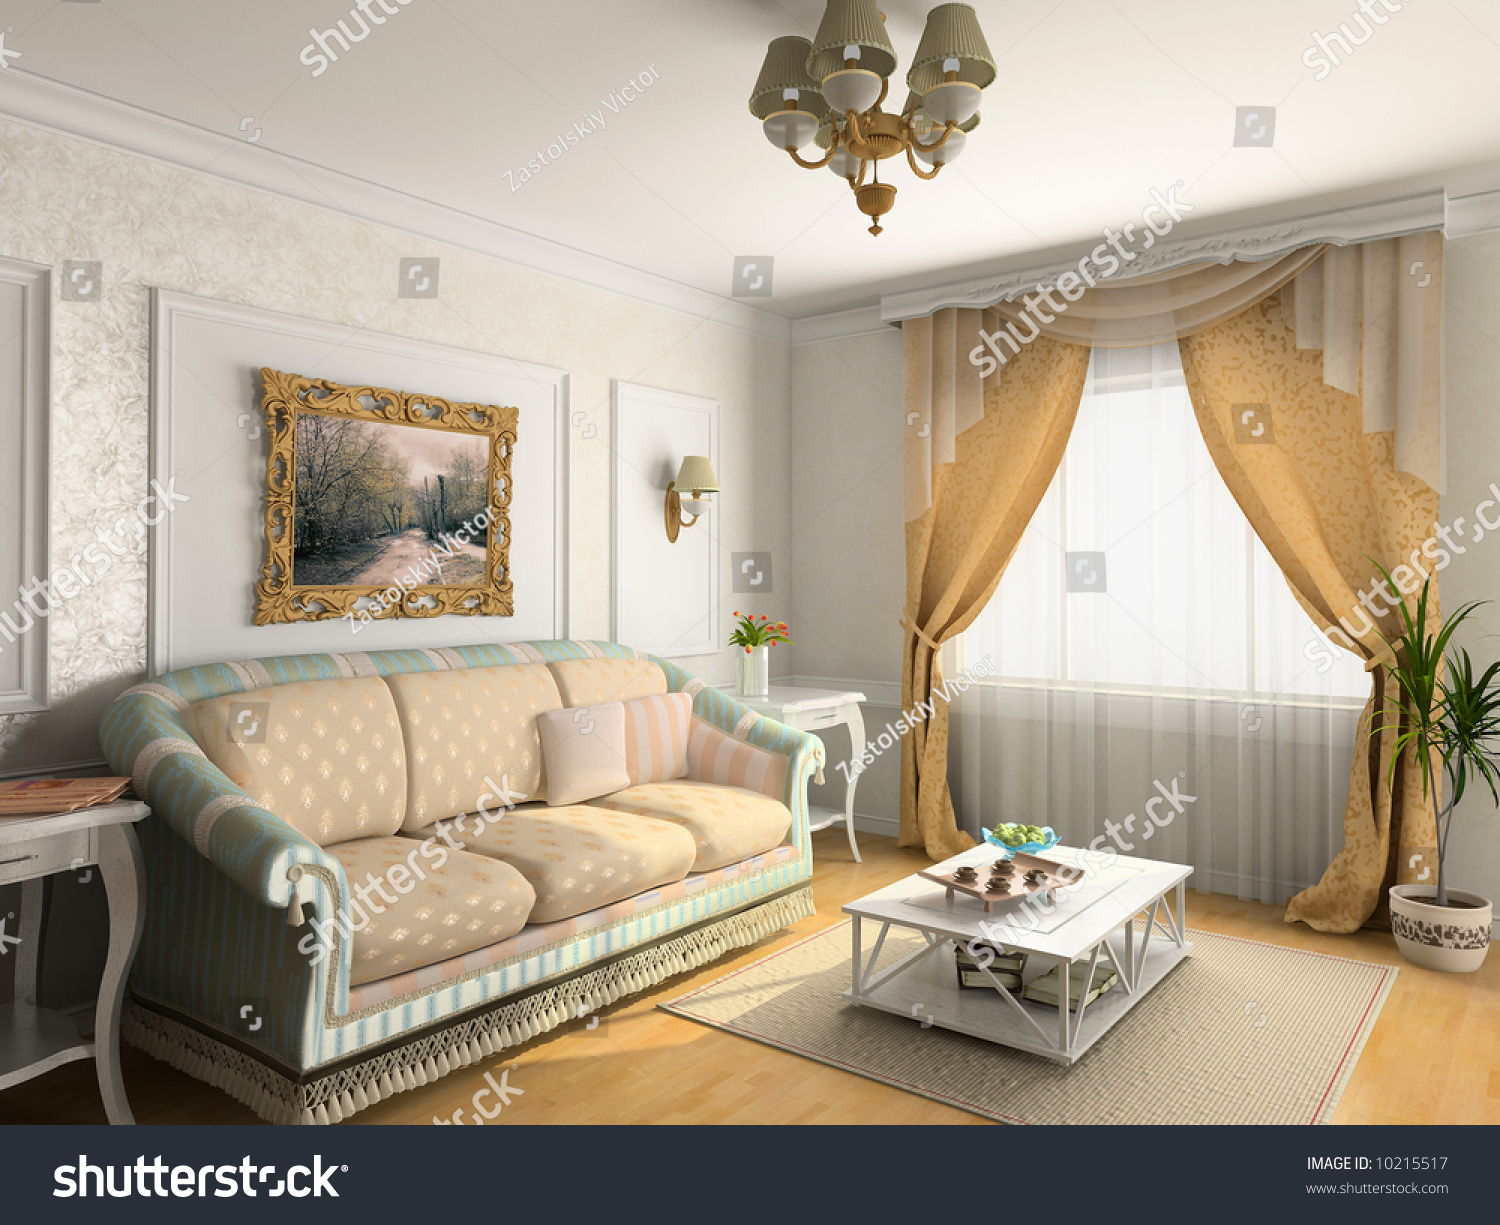 High Quality Modern Classic Interior Design (private Apartment 3d Rendering)